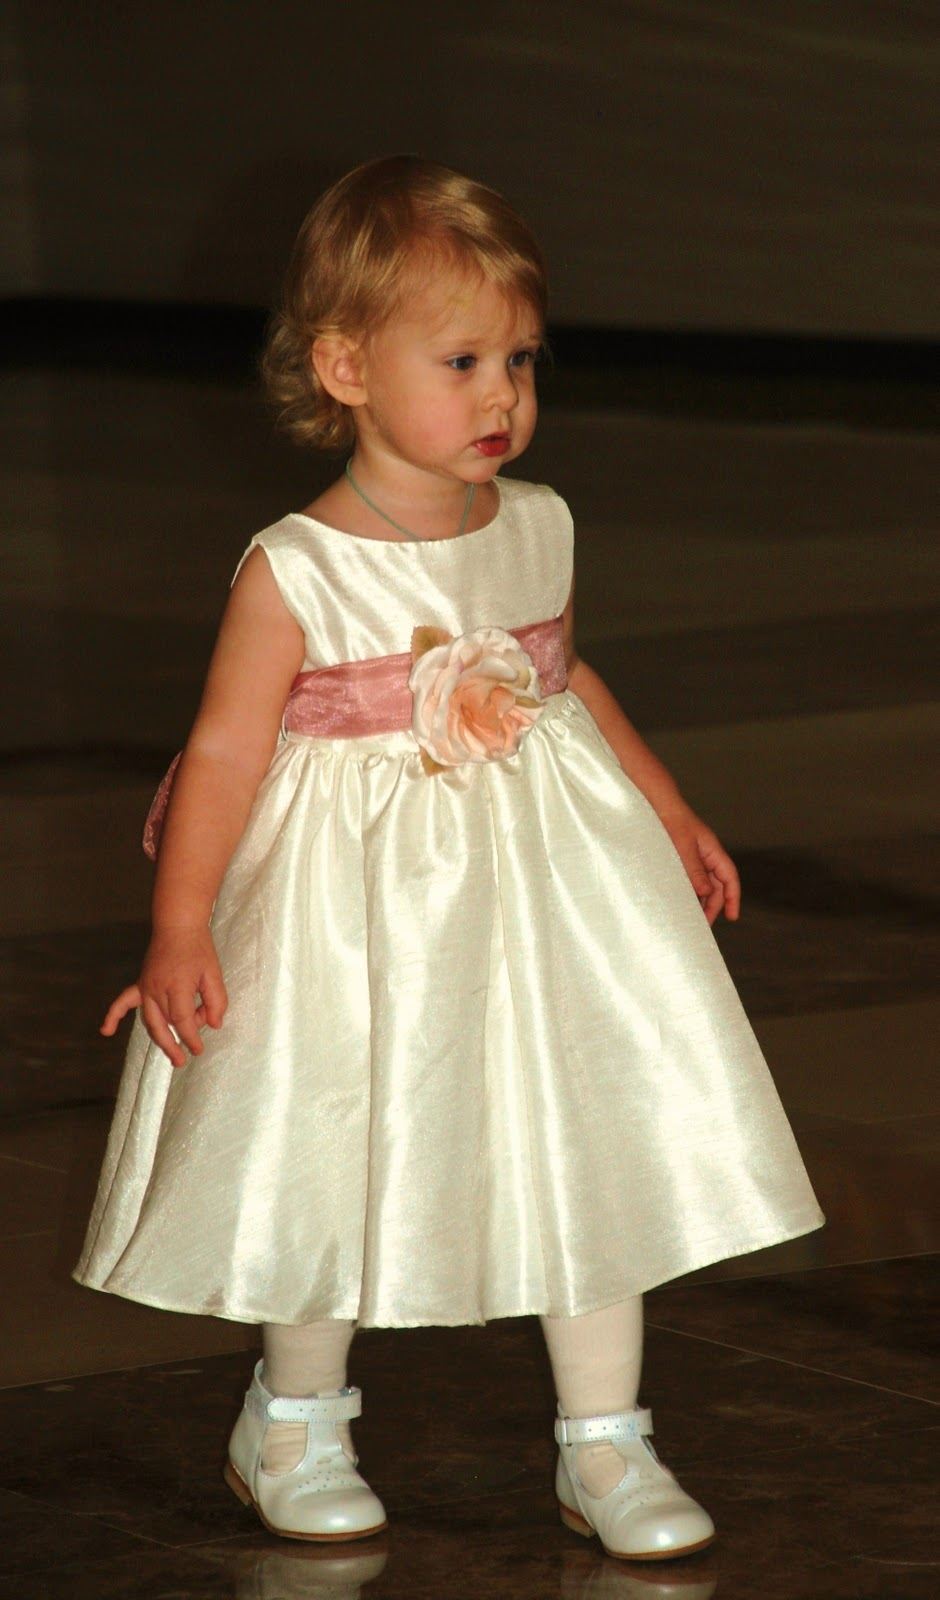 Flower girl dresses for little girls high cut wedding for Little flower girl wedding dresses